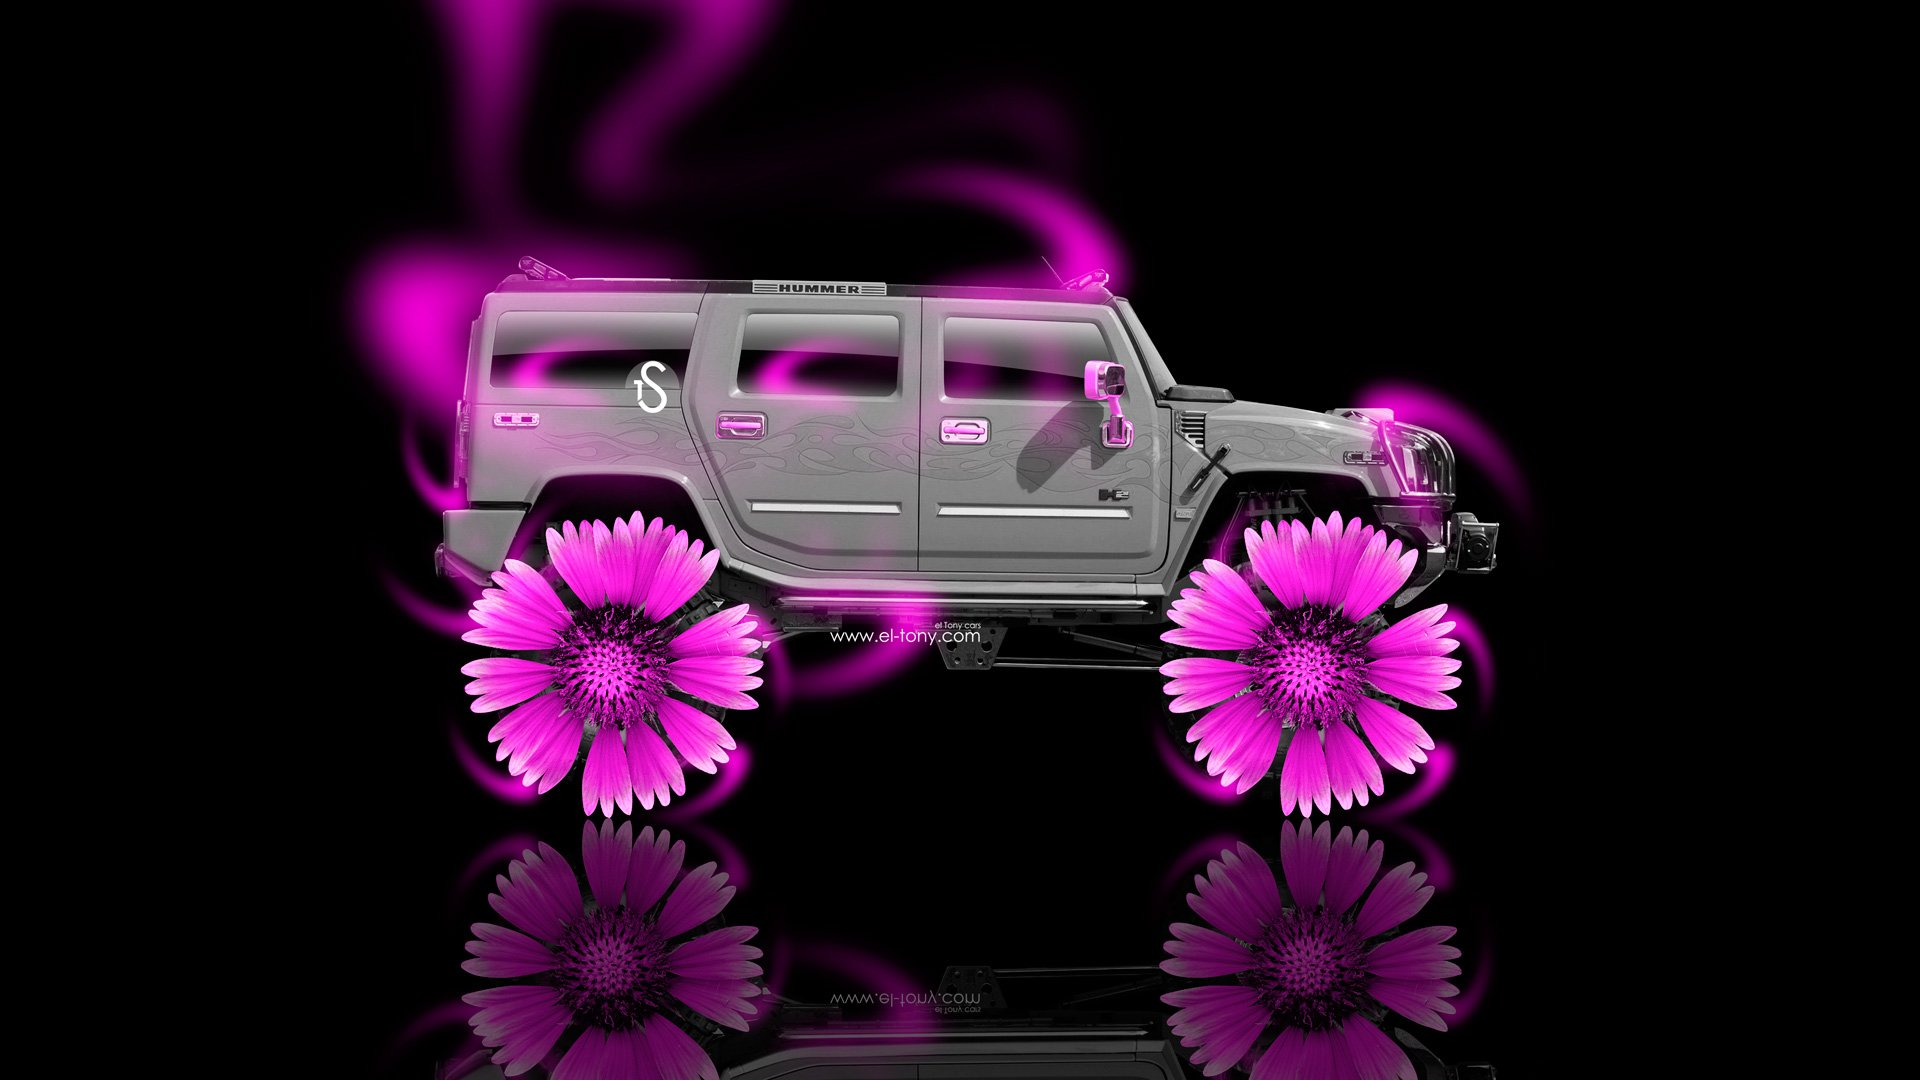 Hummer H2 Fantasy Neon Flowers Car 2014 Pink Neon HD Wallpapers design 1920x1080